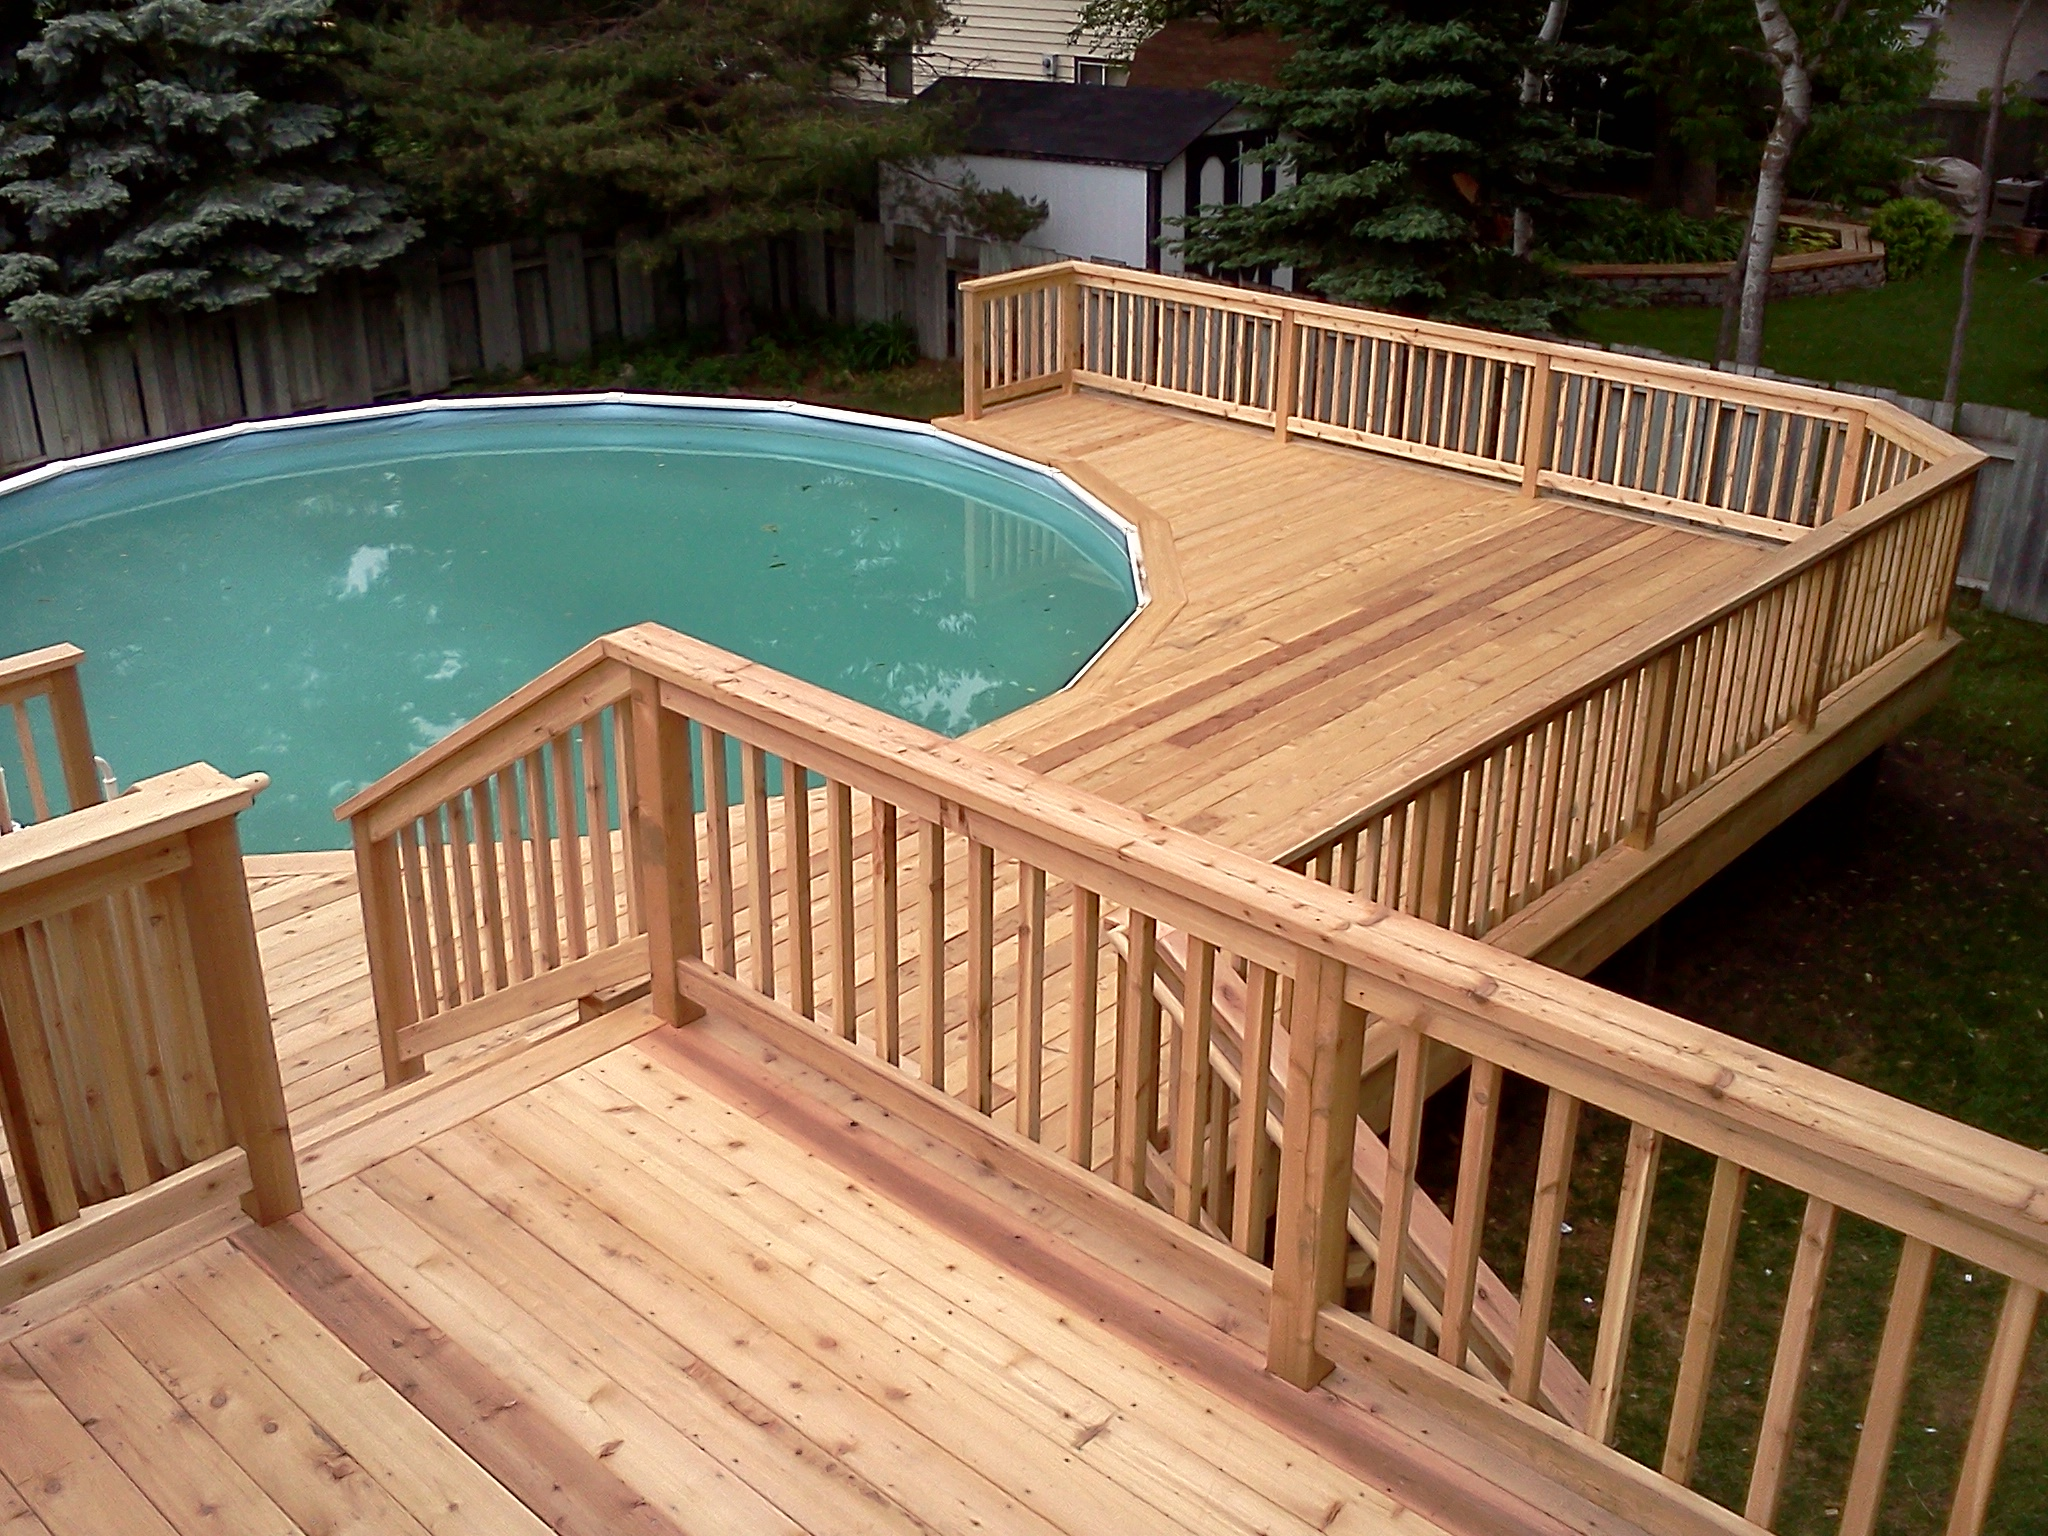 Pool deck wood example fairfax county virginia pool for Pool design virginia